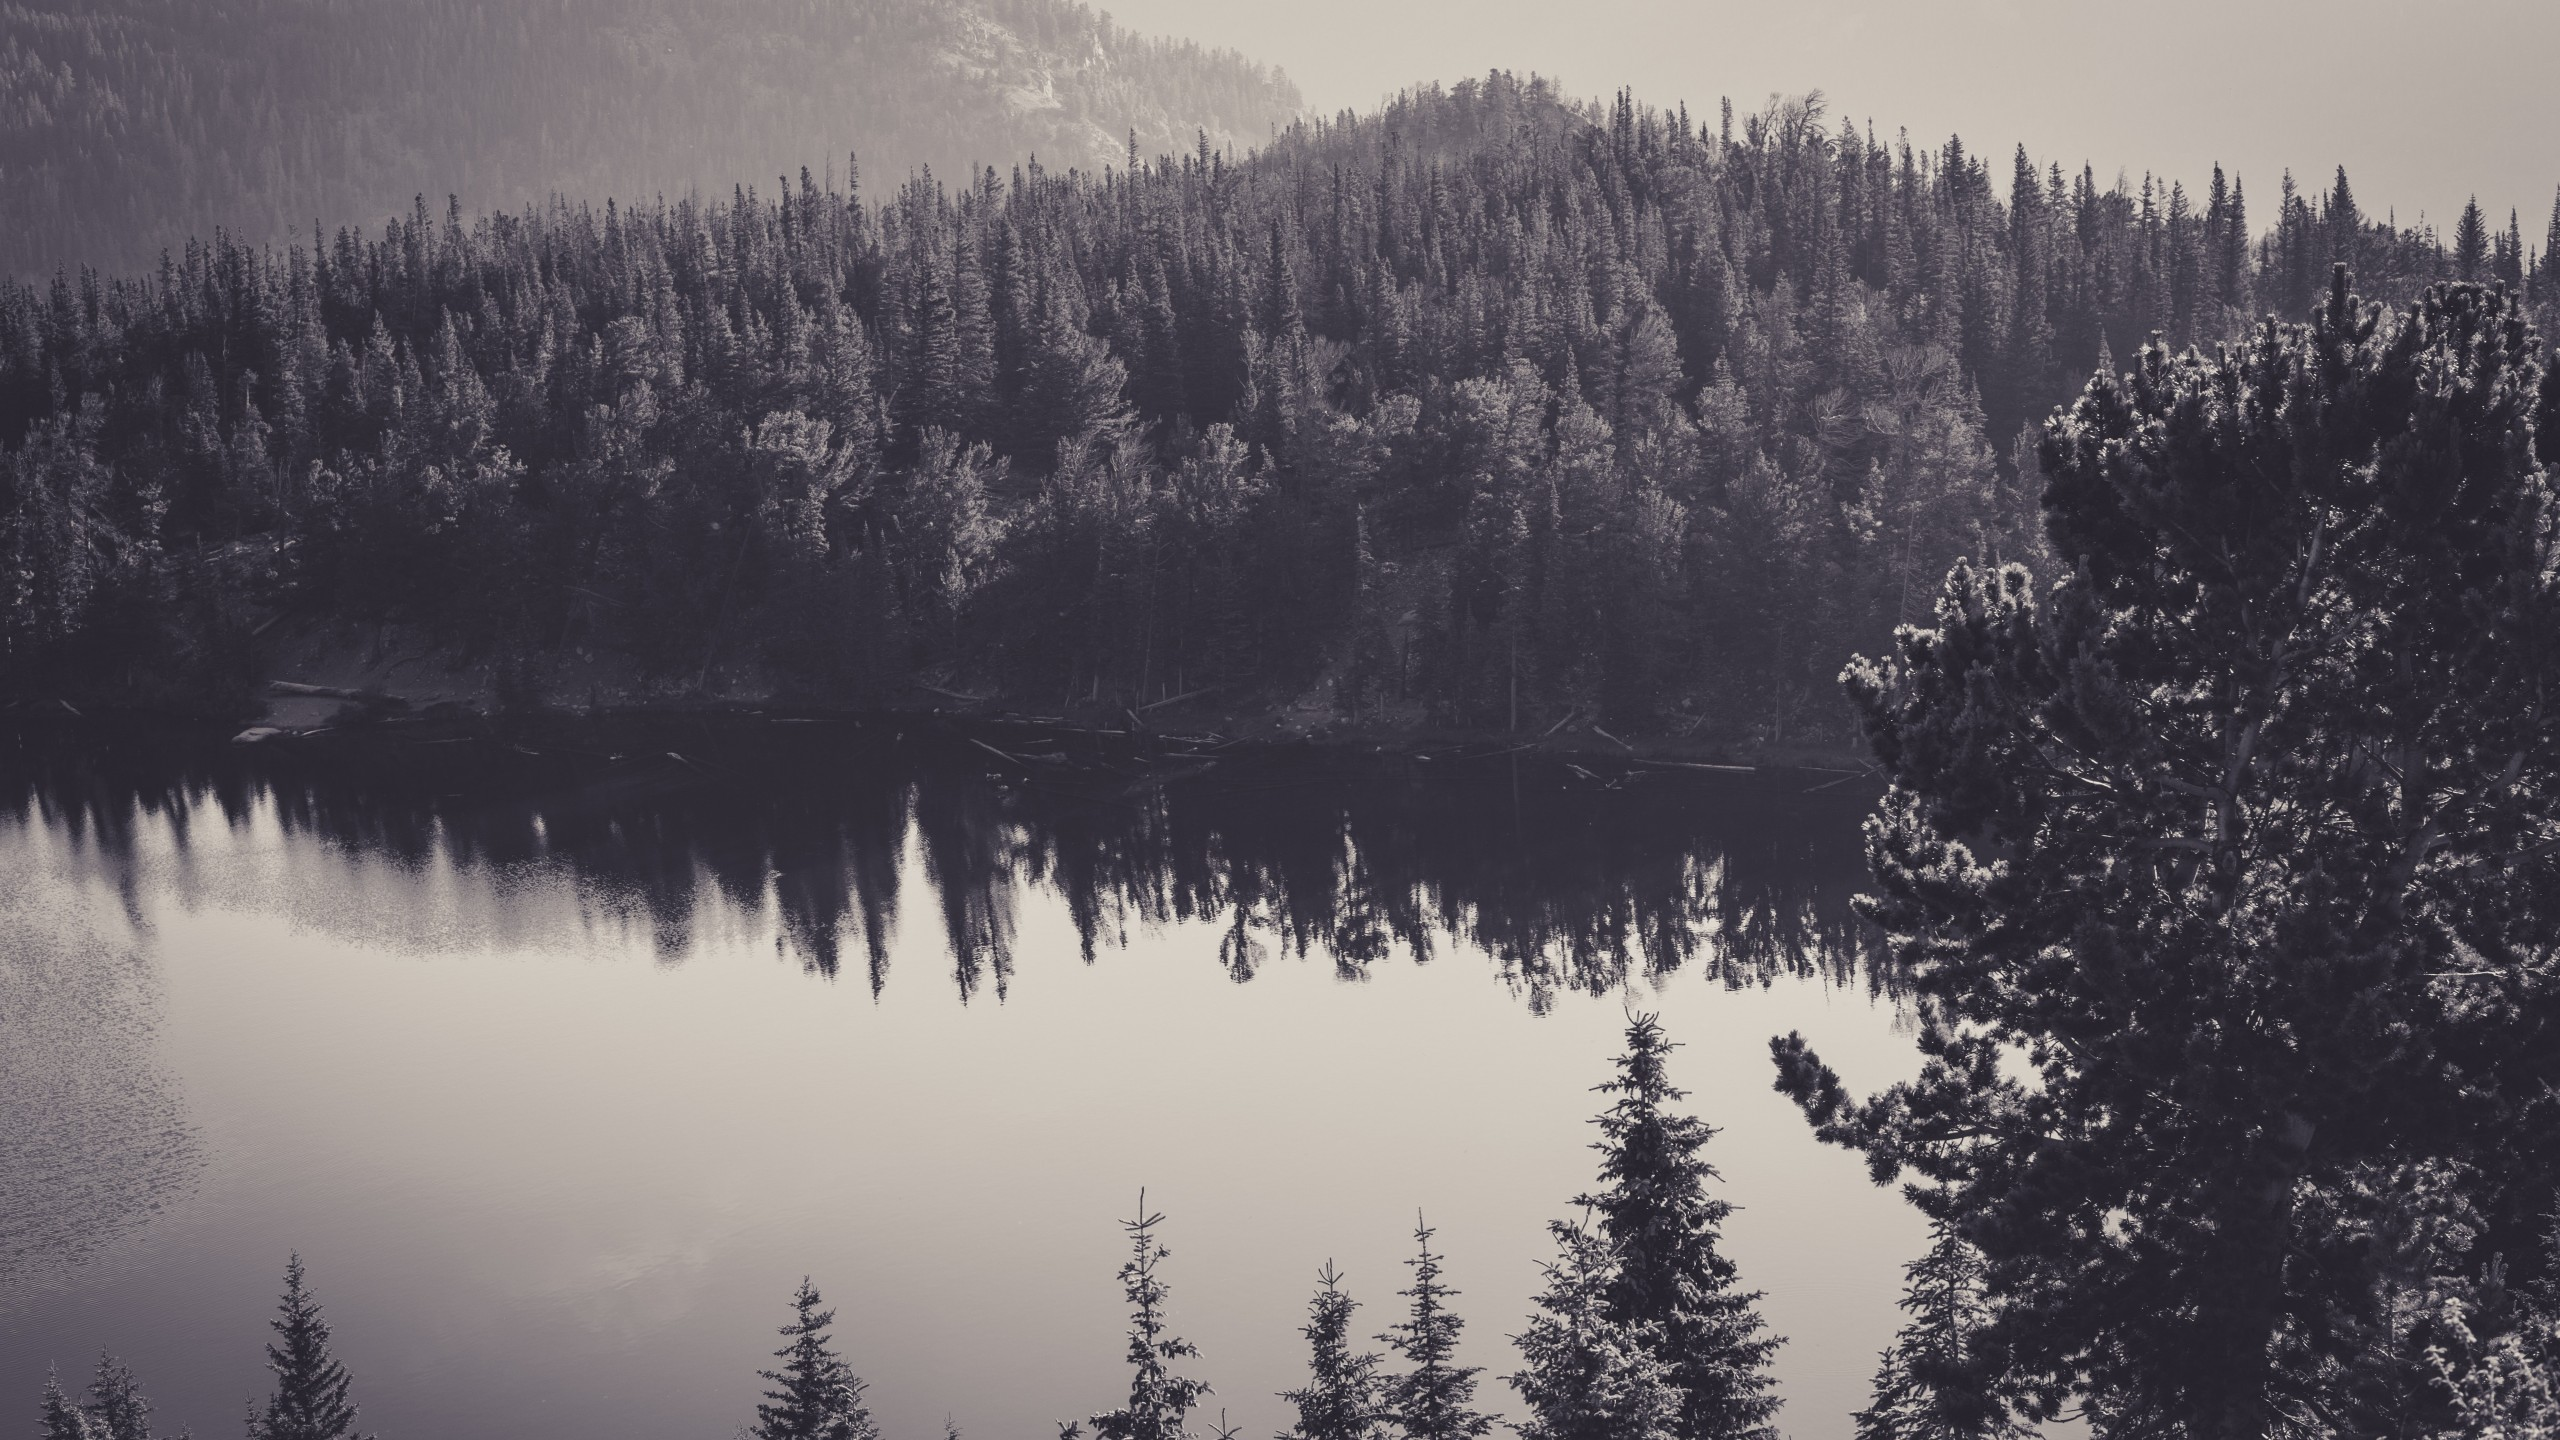 Nature-canada-black-and-white-scenery-travel-top-wallpapers-2560×1440